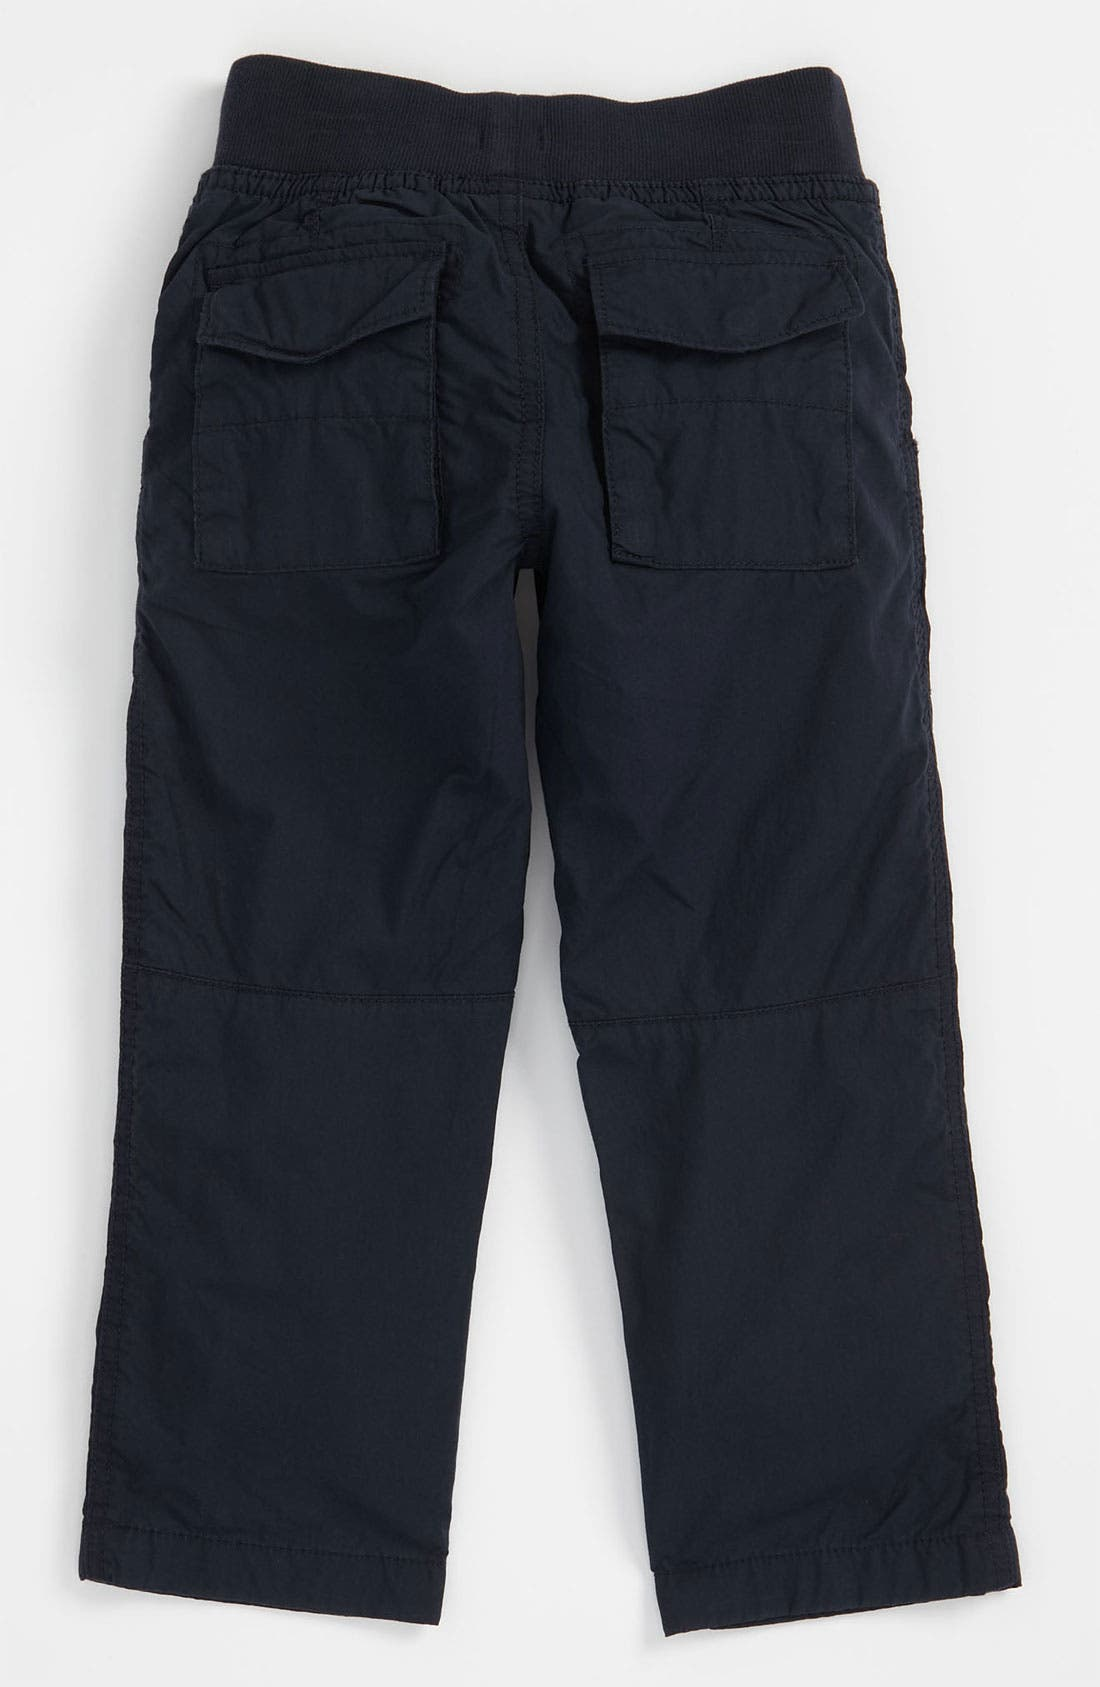 Alternate Image 2  - United Colors of Benetton Kids 'Sport' Pants (Toddler)